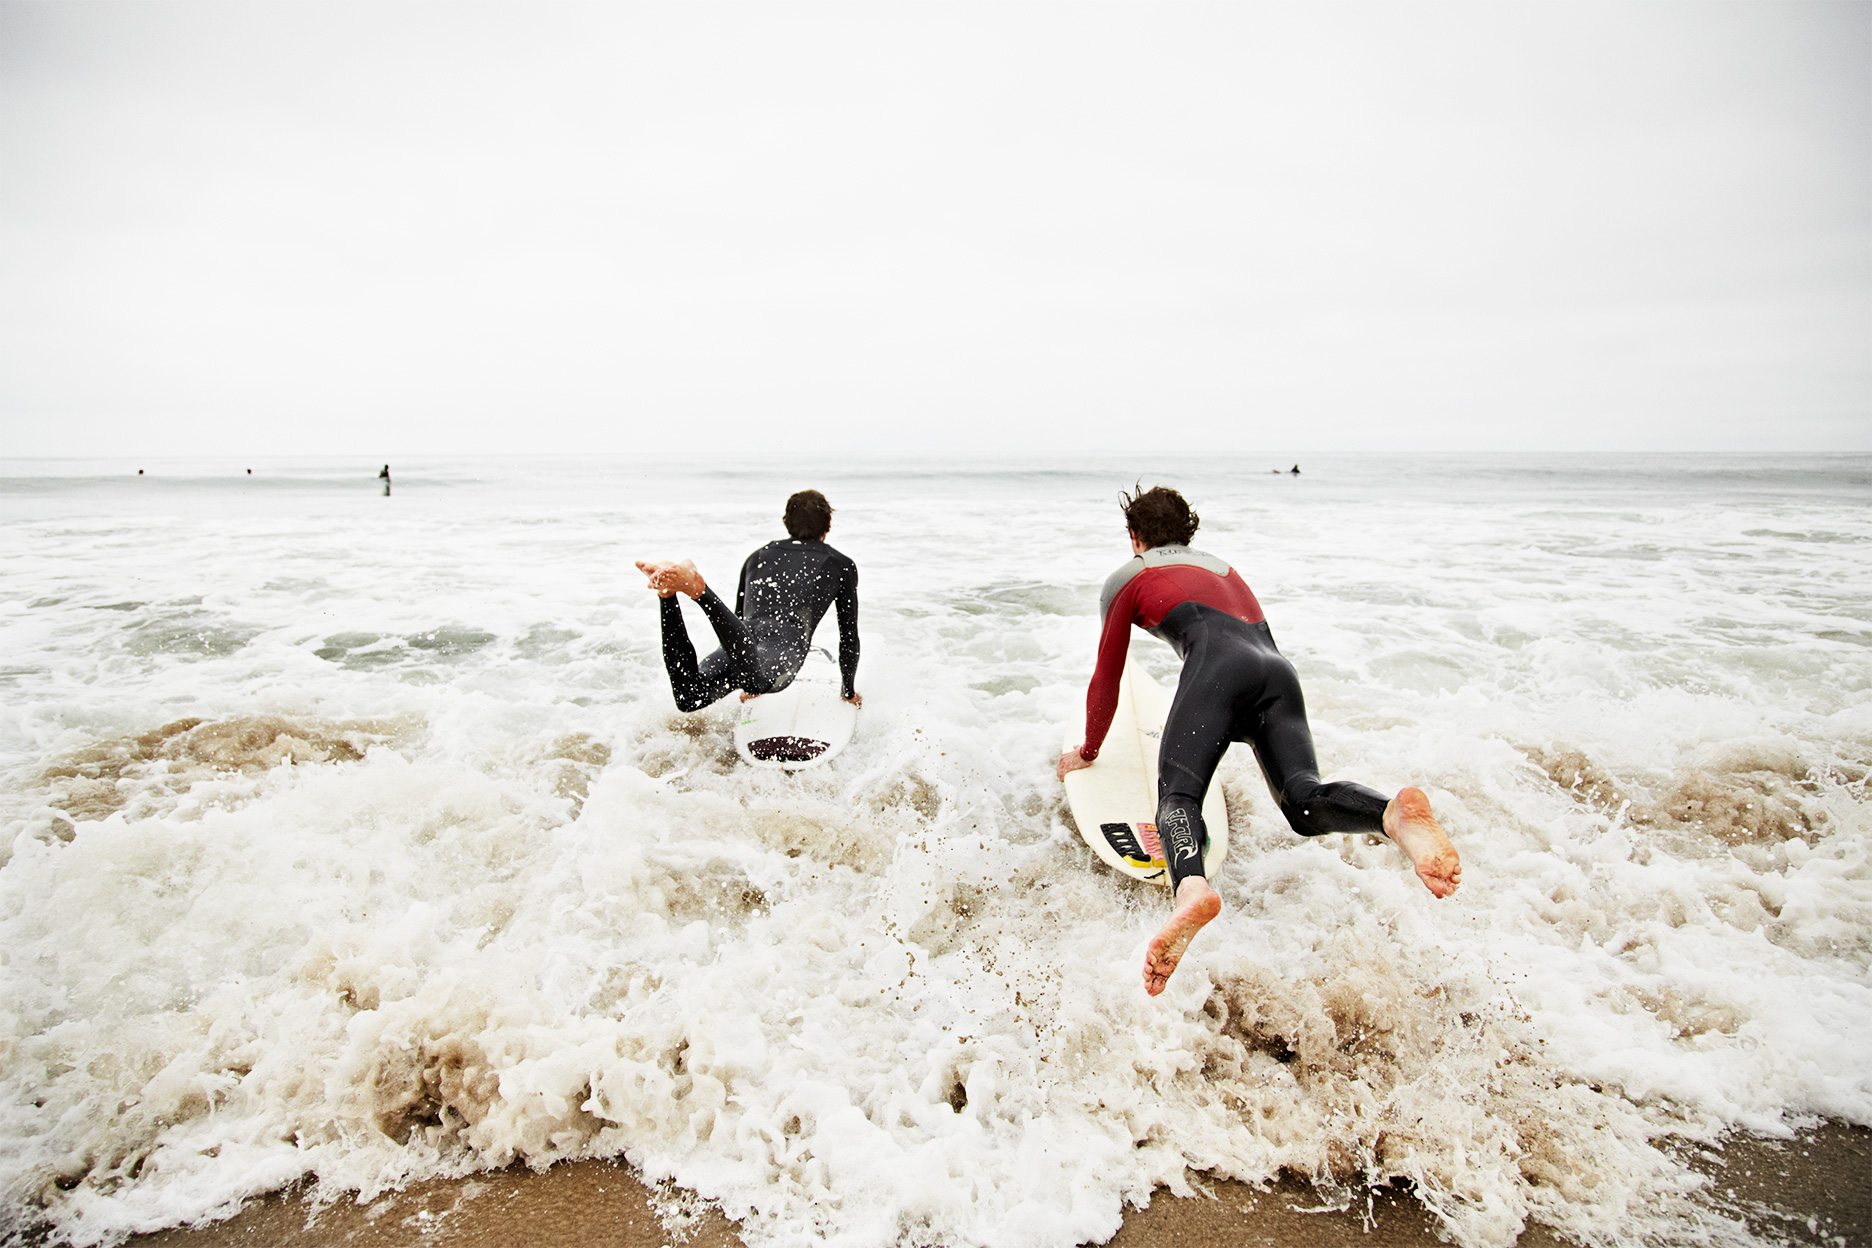 Surfers_Paddling-out_Malibu_